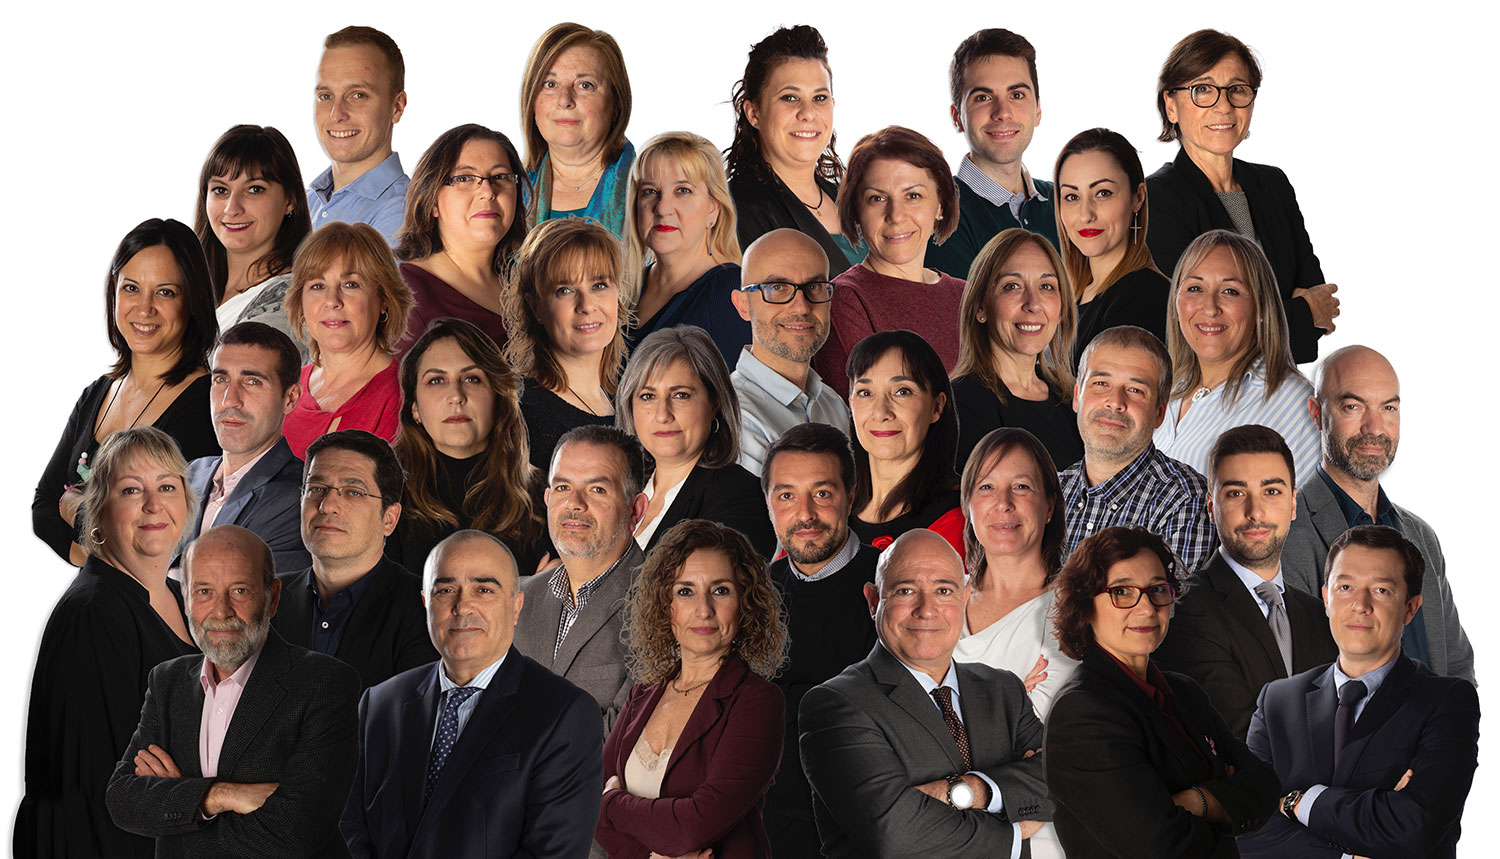 Affectio Group equipo